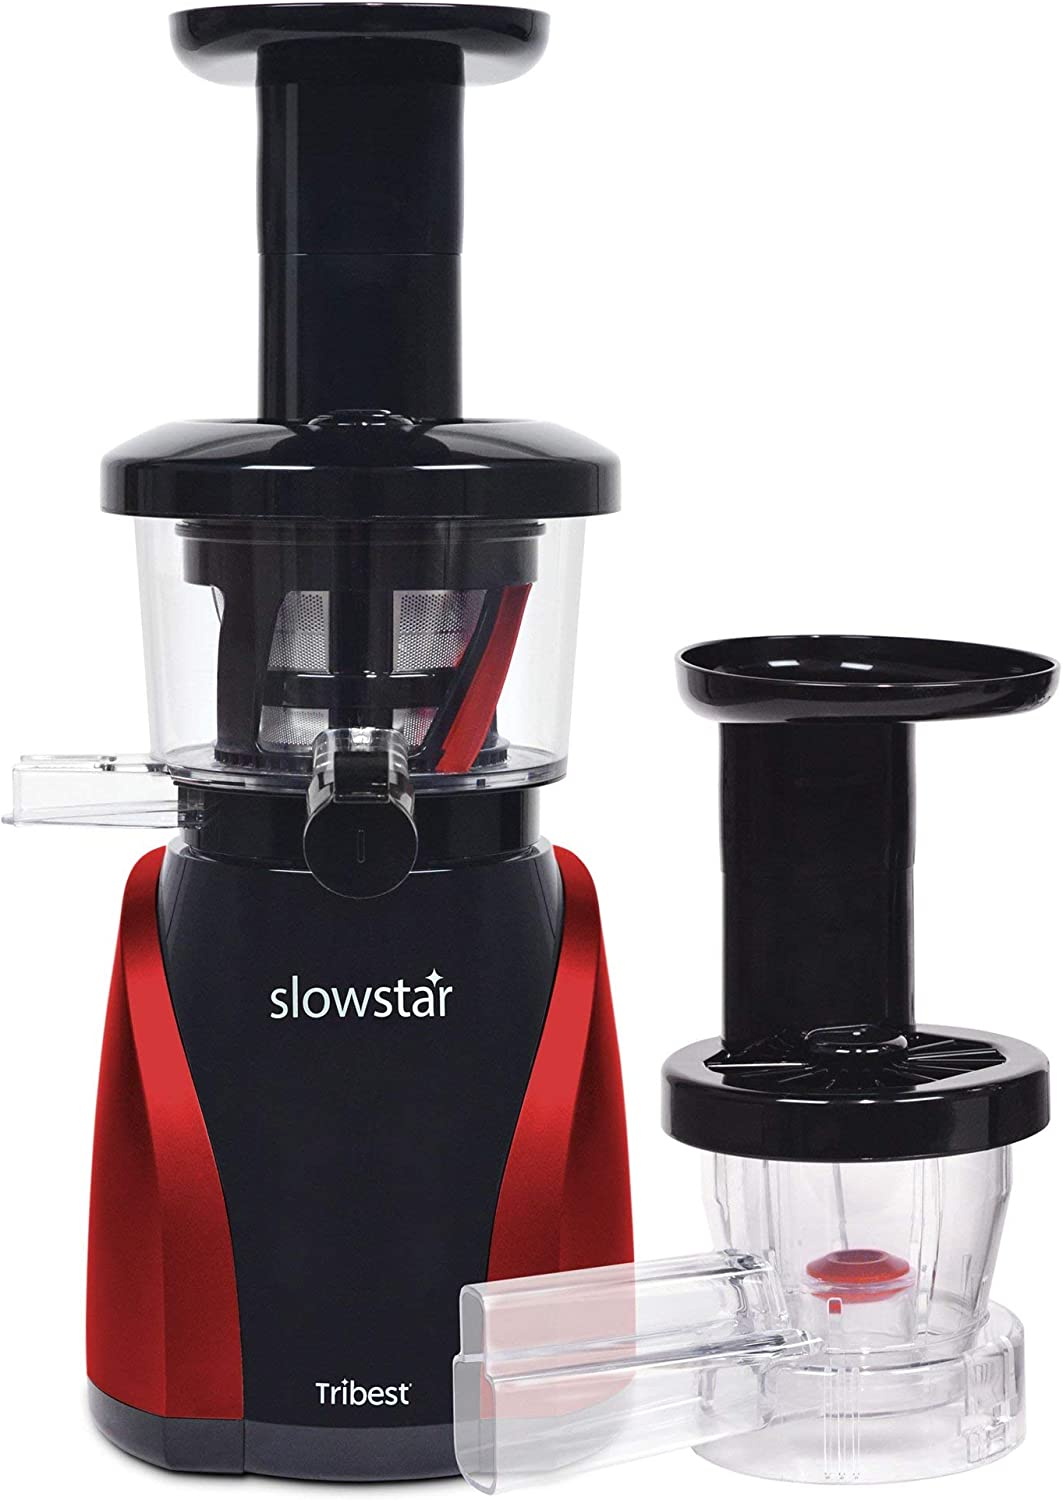 71iQfeW2doL. AC SL1500 The Best Masticating Juicer 2021 - Reviews & Buyer's Guide